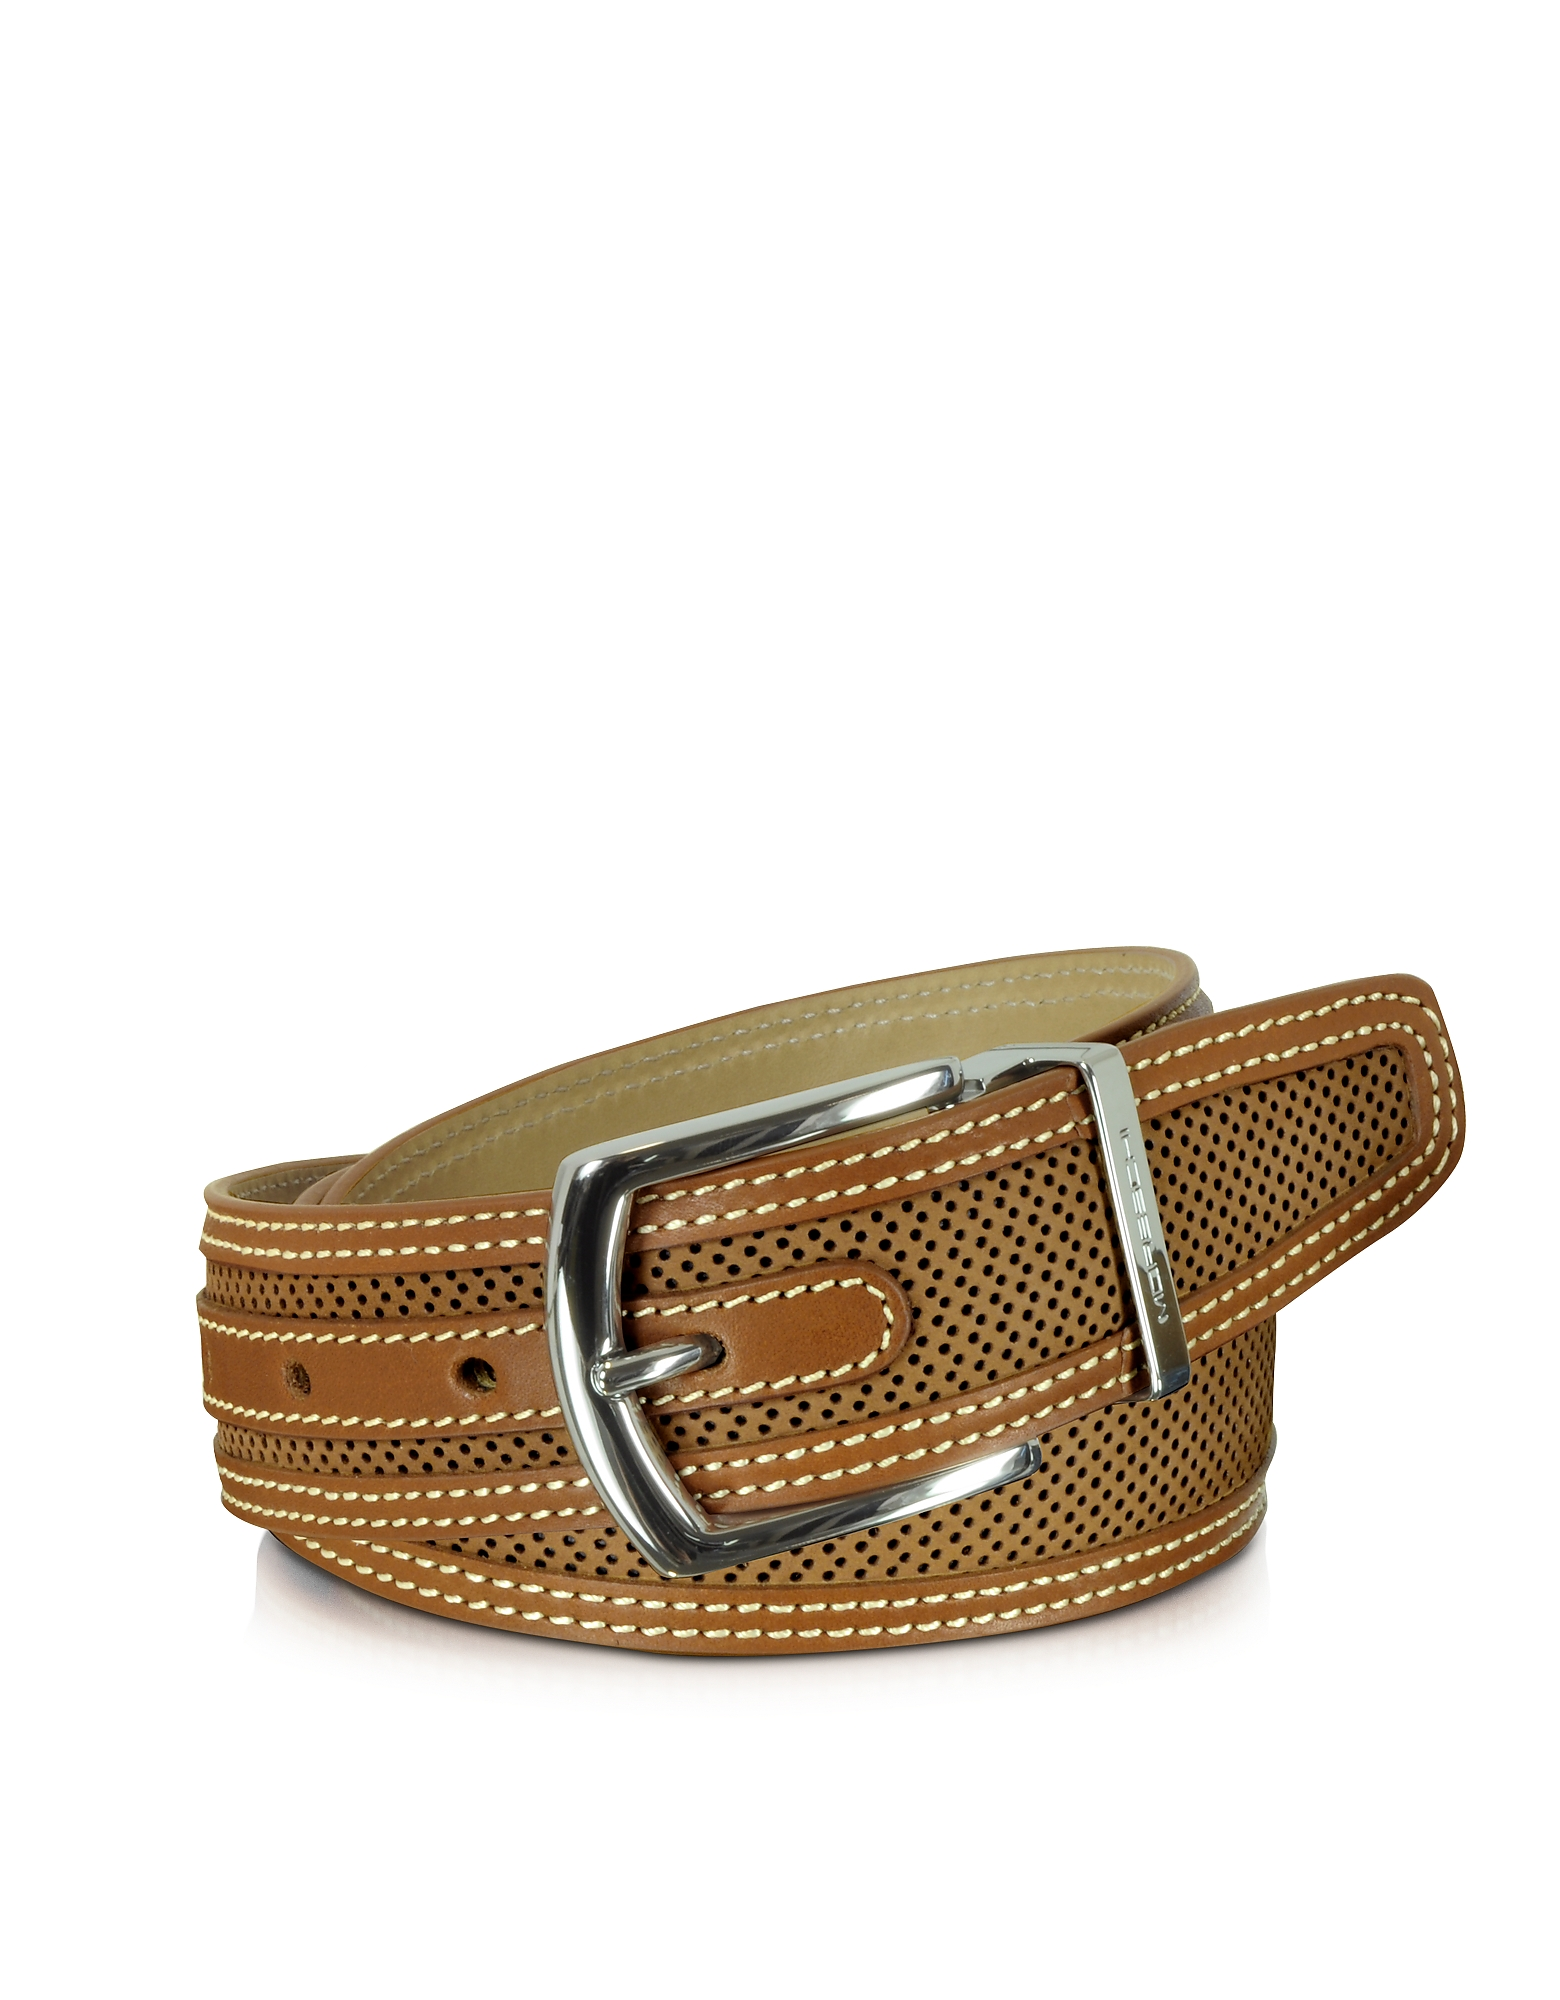 Moreschi Men's Belts, St. Barth Tan Perforated Nubuck and Leather Belt